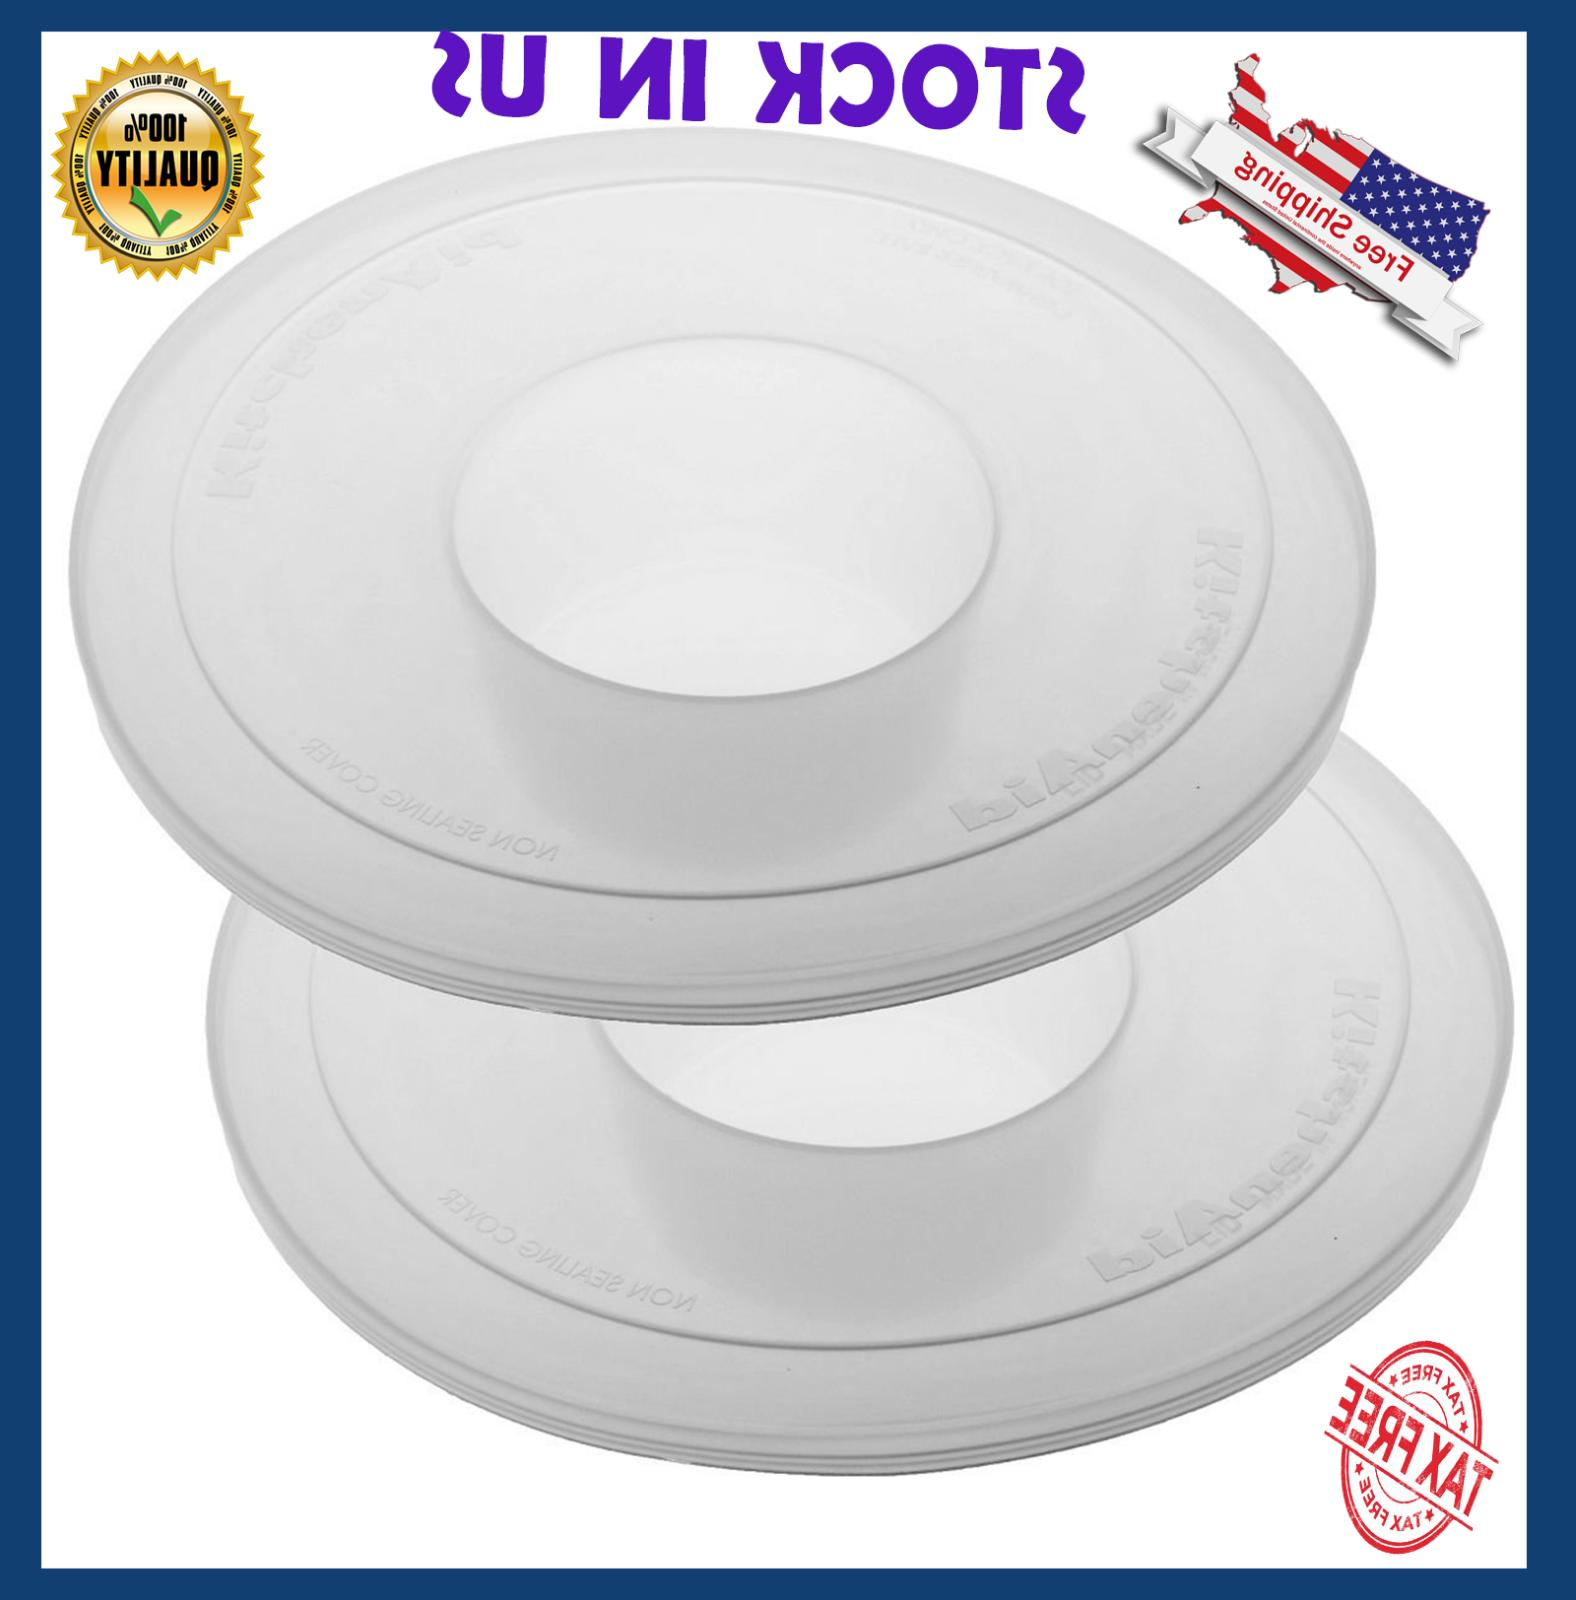 kbc90n replacement bowl covers 4 5 5